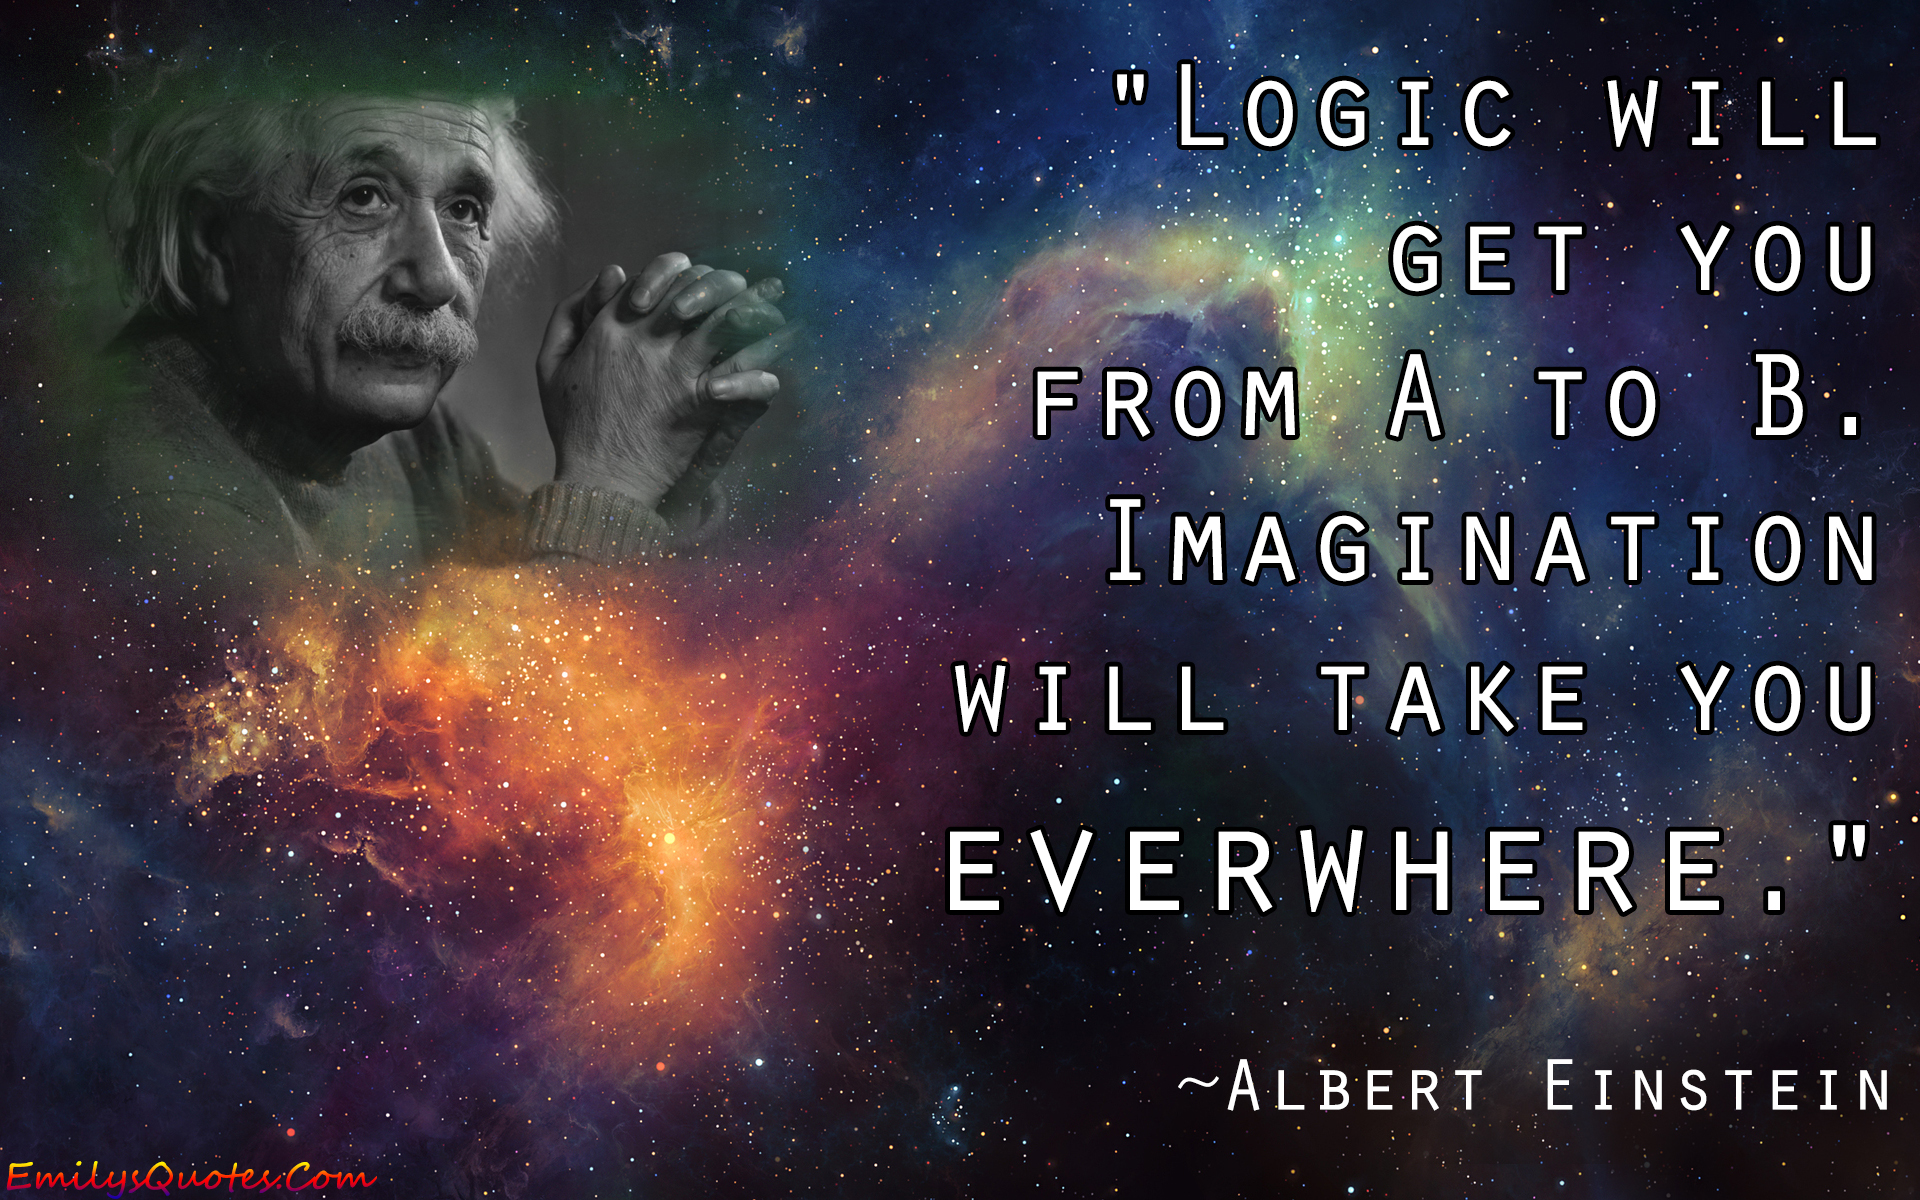 Albert Einstein quote on logic and imagination